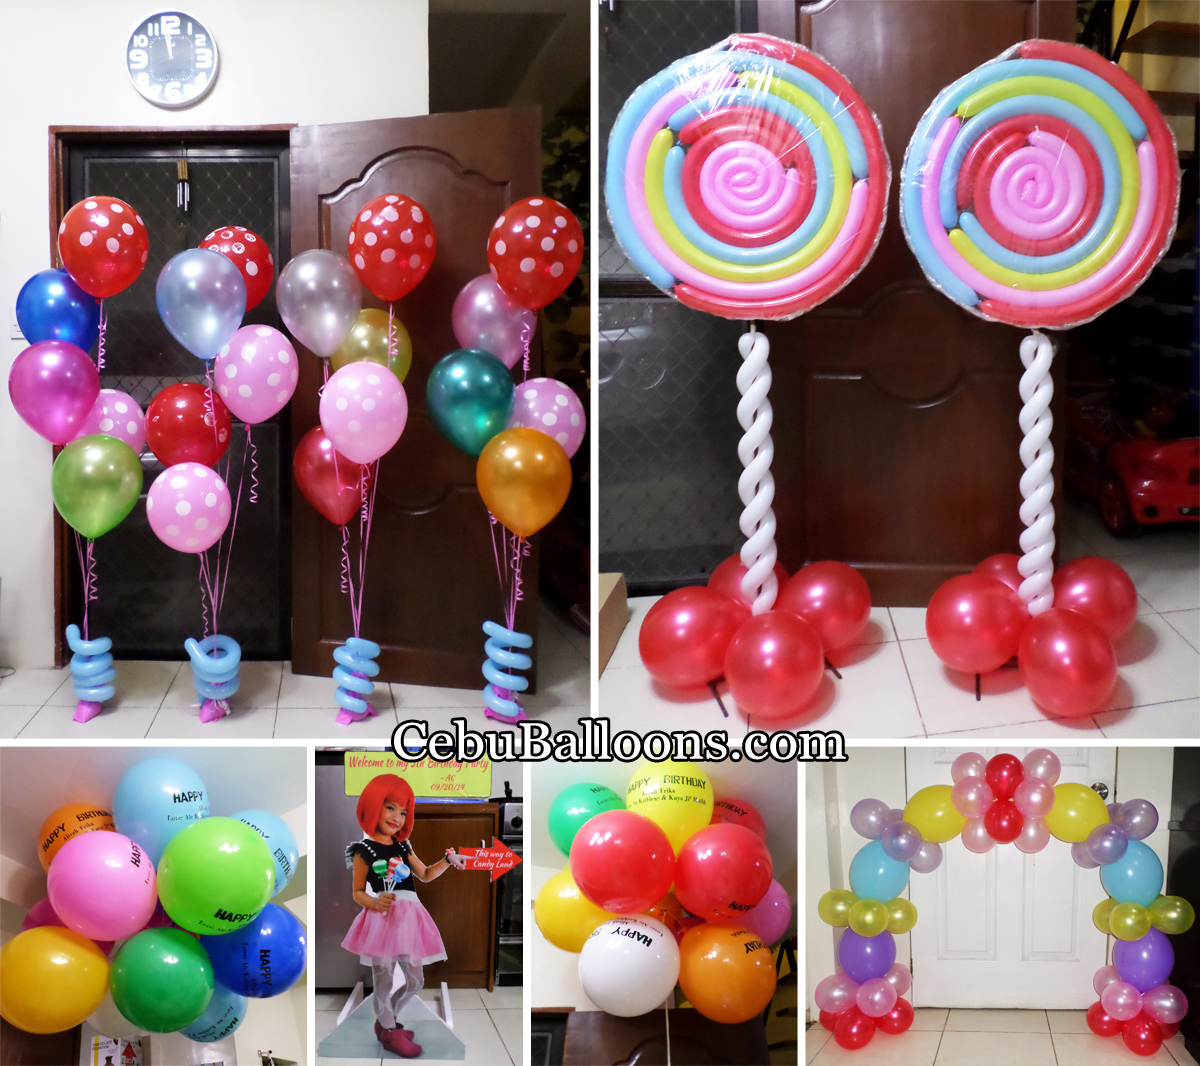 Candyland Cebu Balloons And Party Supplies